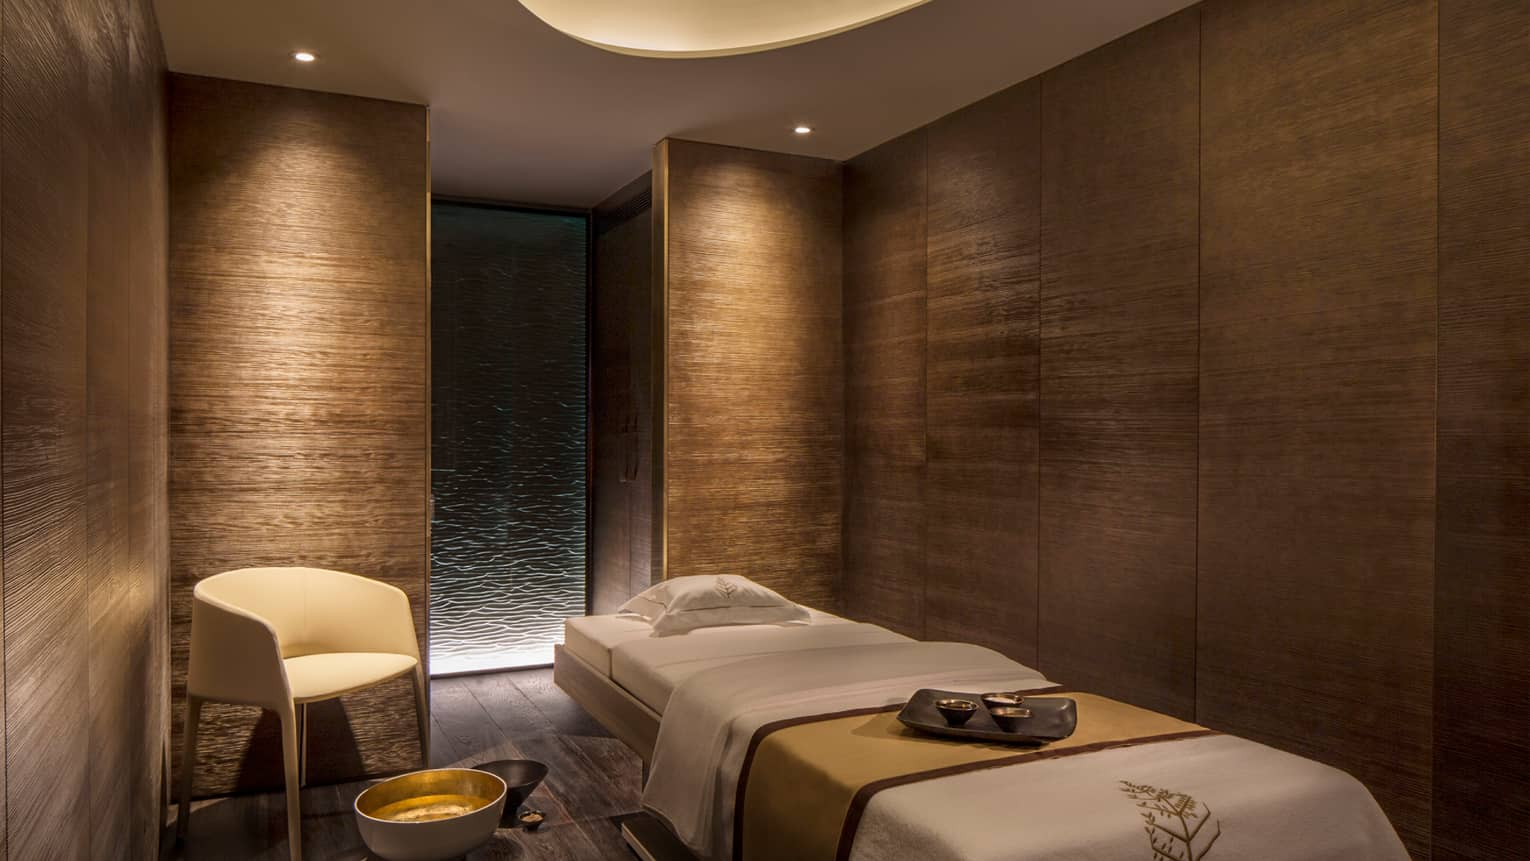 View of private massage room in spa and wellness centre, wood grain walls and low lighting